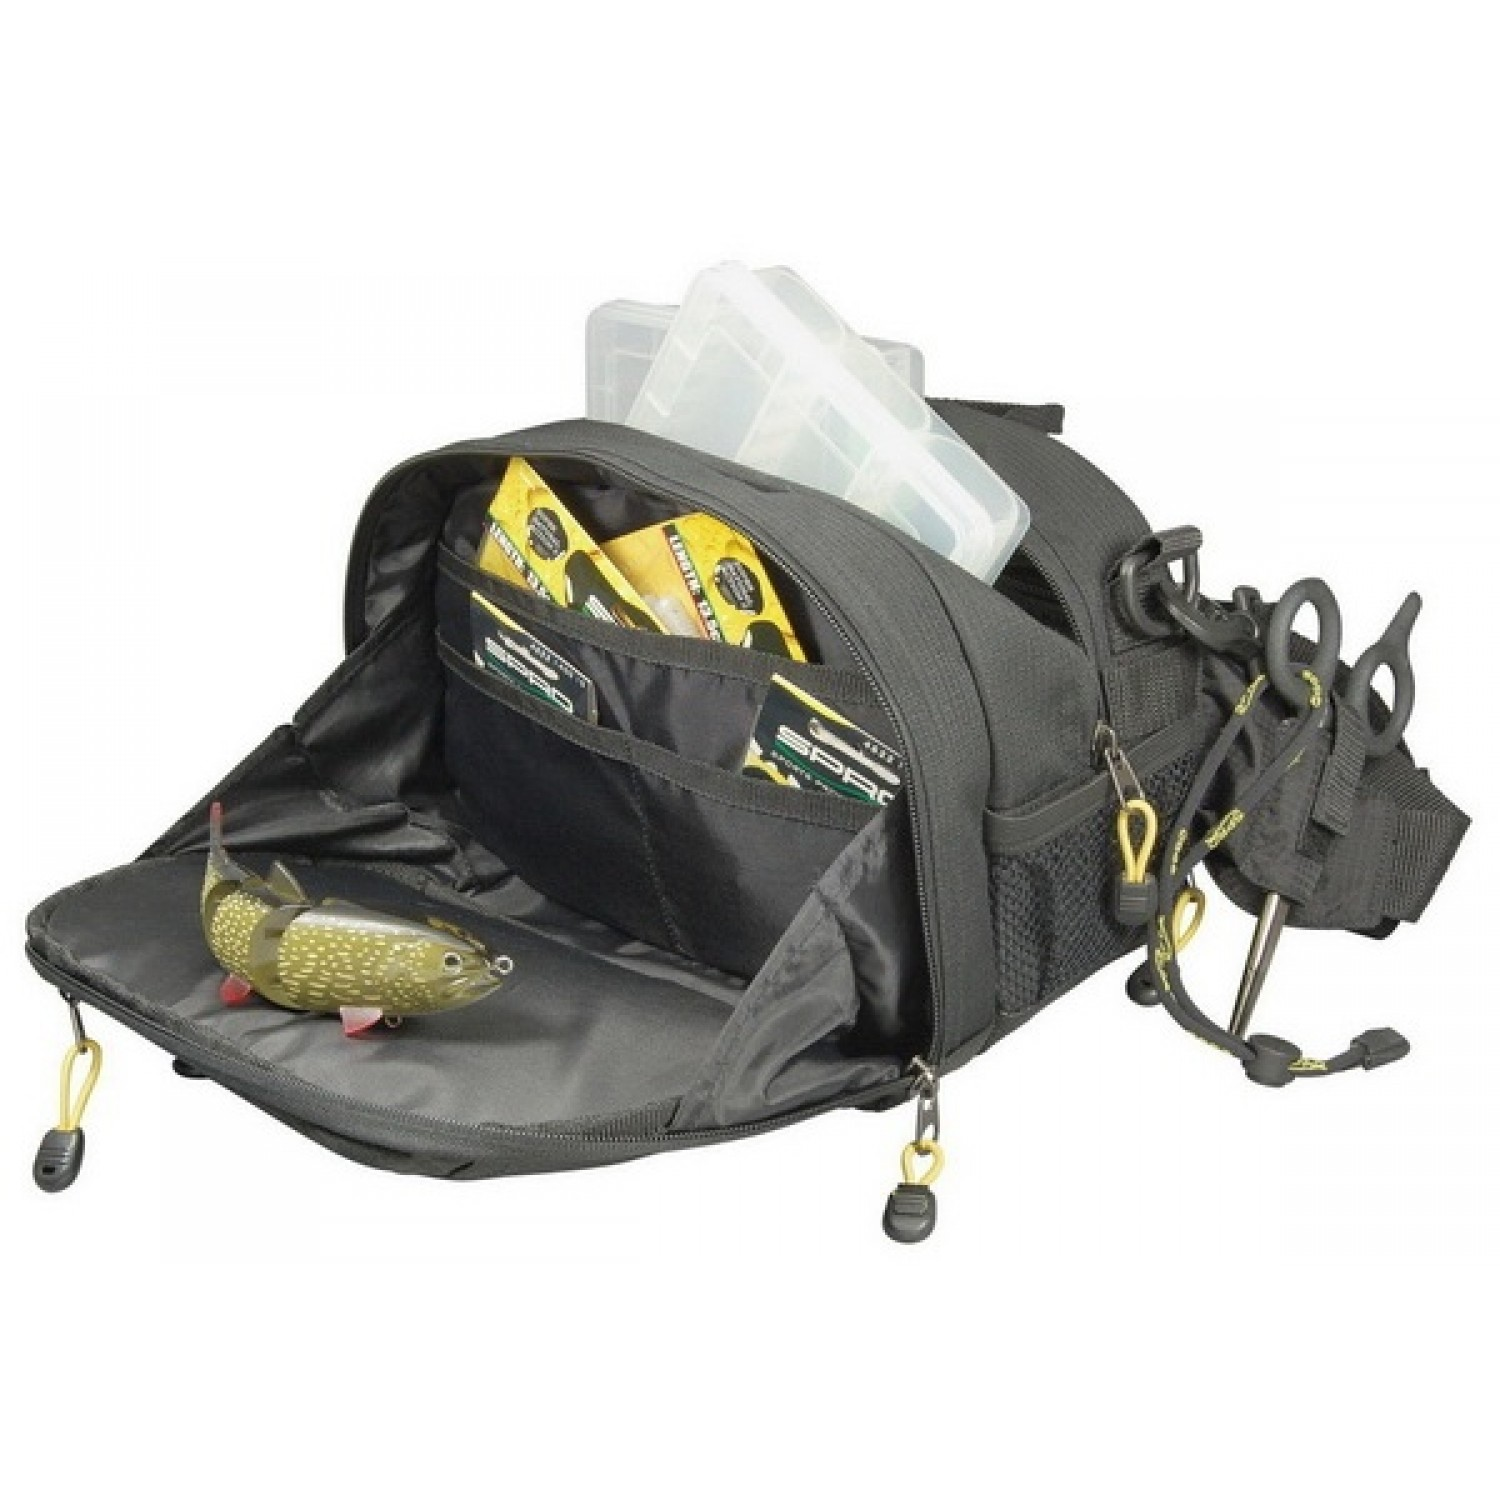 Spro Sling & Hip Pack + 2 Boxes